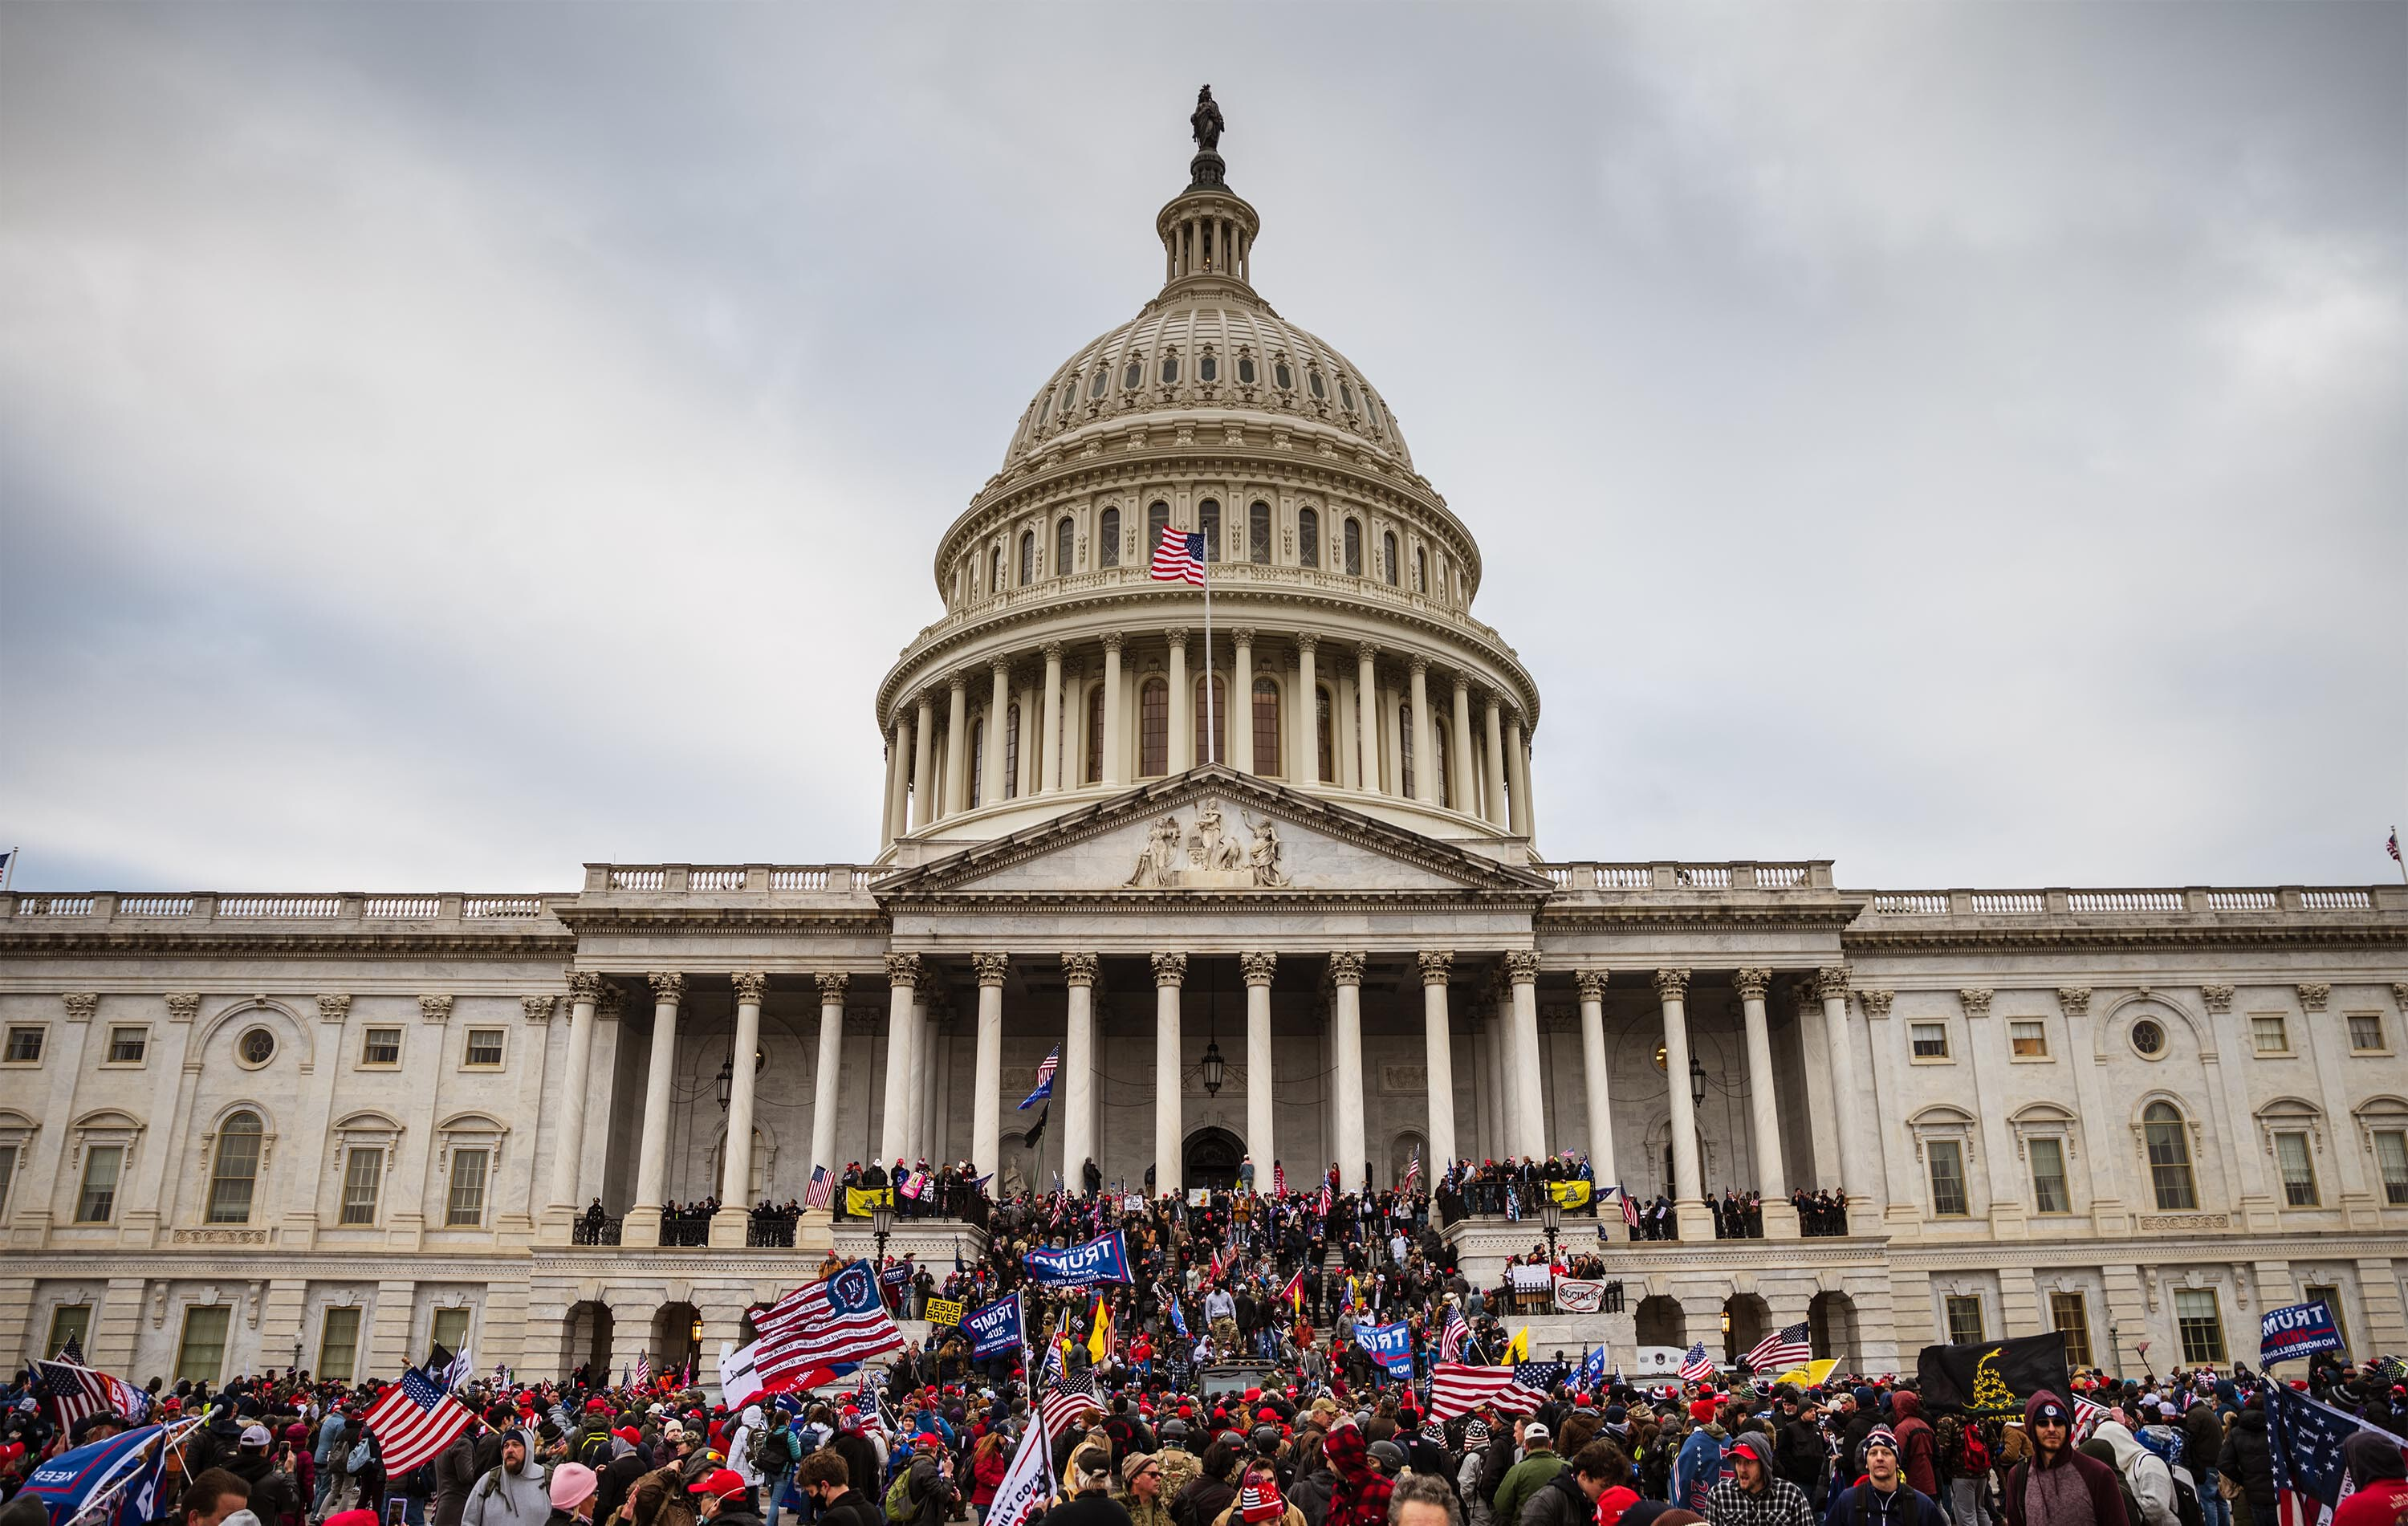 Seven more US Capitol riot defendants plead guilty, including armed man who threatened to shoot Pelosi